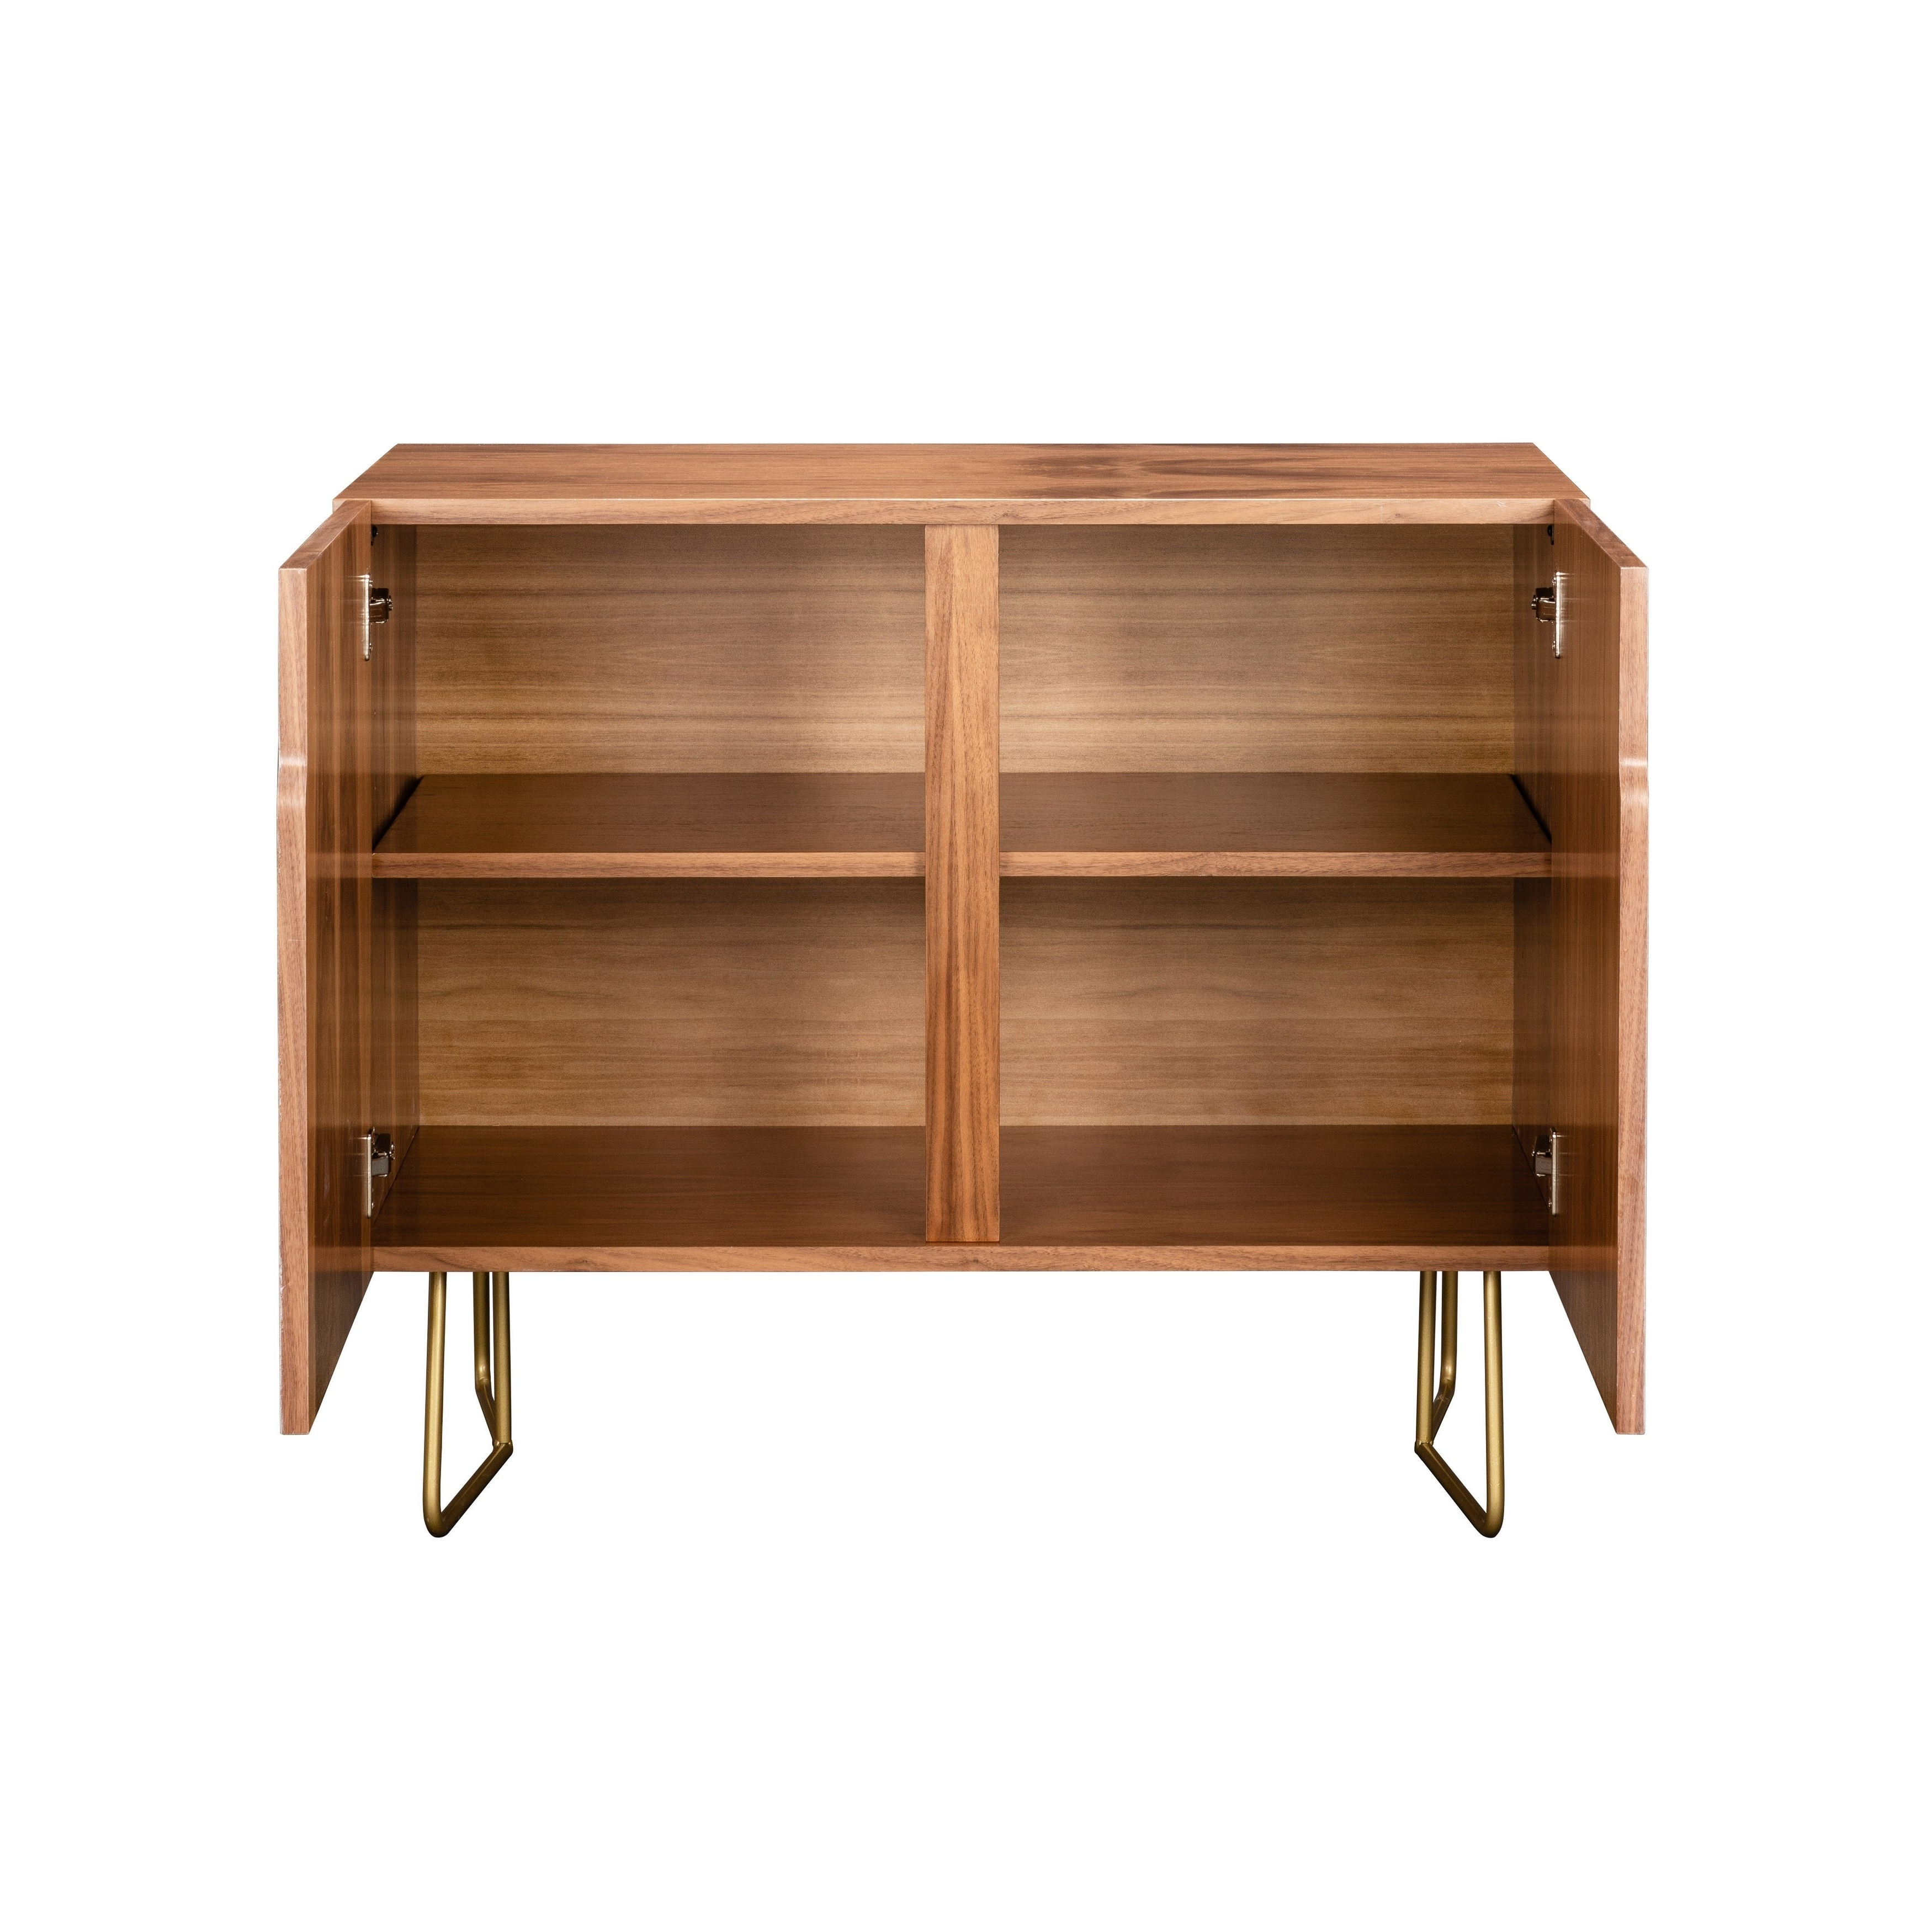 Deny Designs Festival Eclipse Credenza (Birch Or Walnut, 2 Leg Options) Pertaining To Festival Eclipse Credenzas (View 5 of 20)